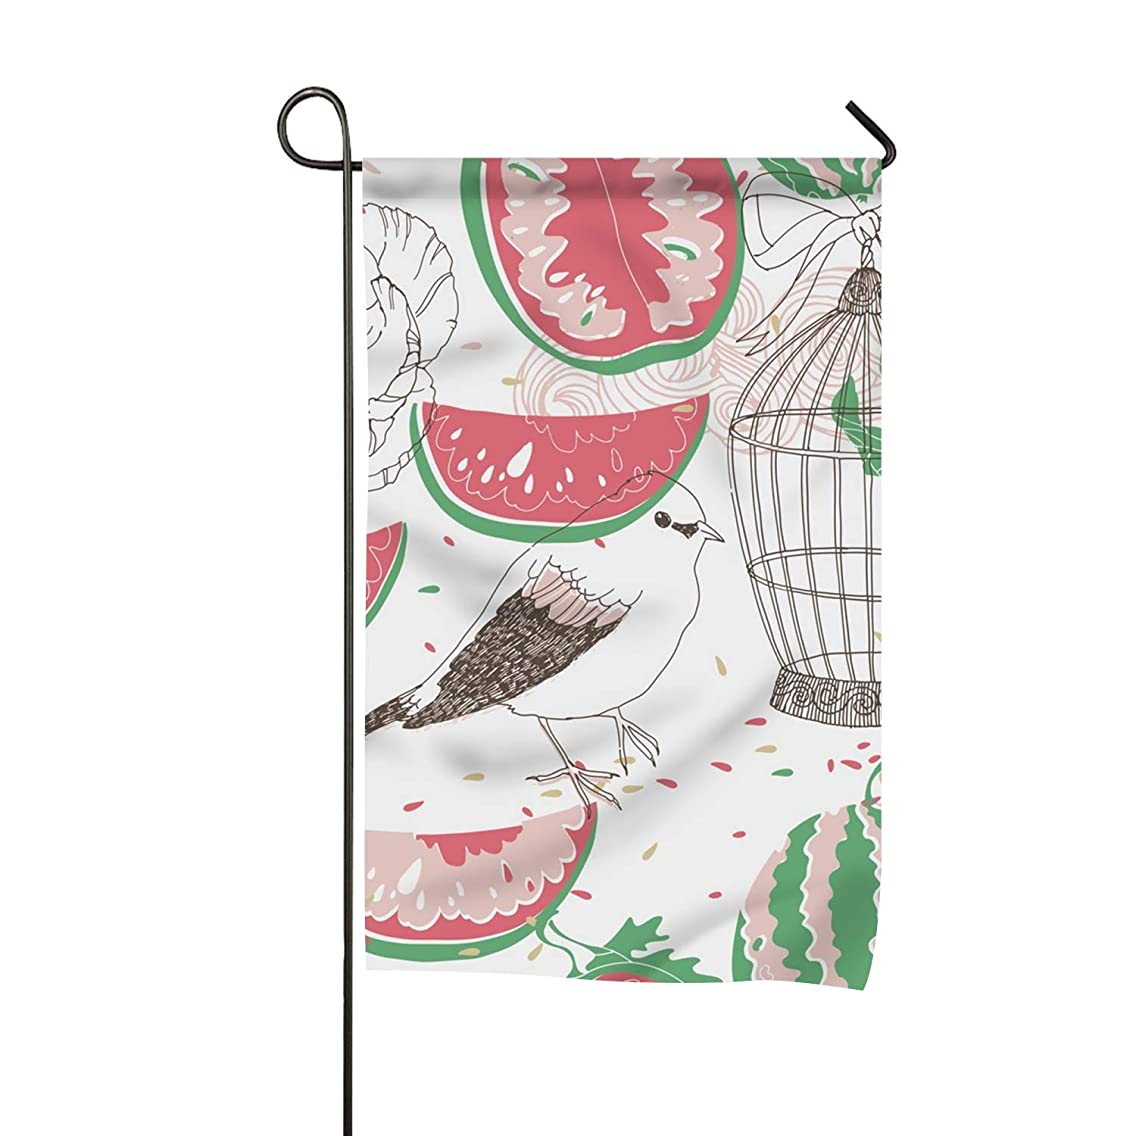 Degrema Pastel Collage Patterns Garden Flag Outdoor Patio Seasonal Holiday